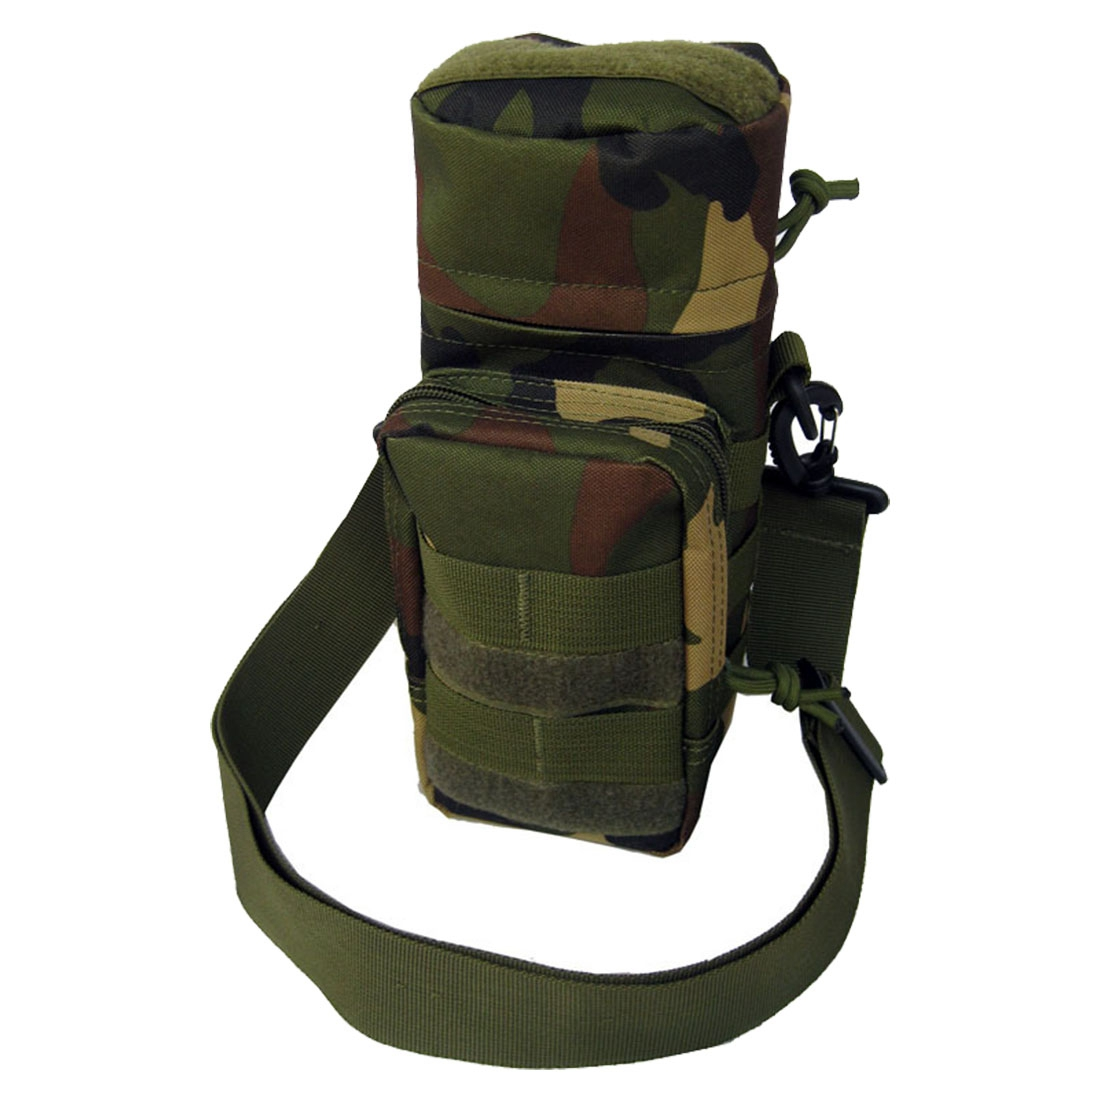 Molle Zipper Water Bottle Utility Medic Pouch w Small Mess Pouch war game (Color: Jungle camouflage)